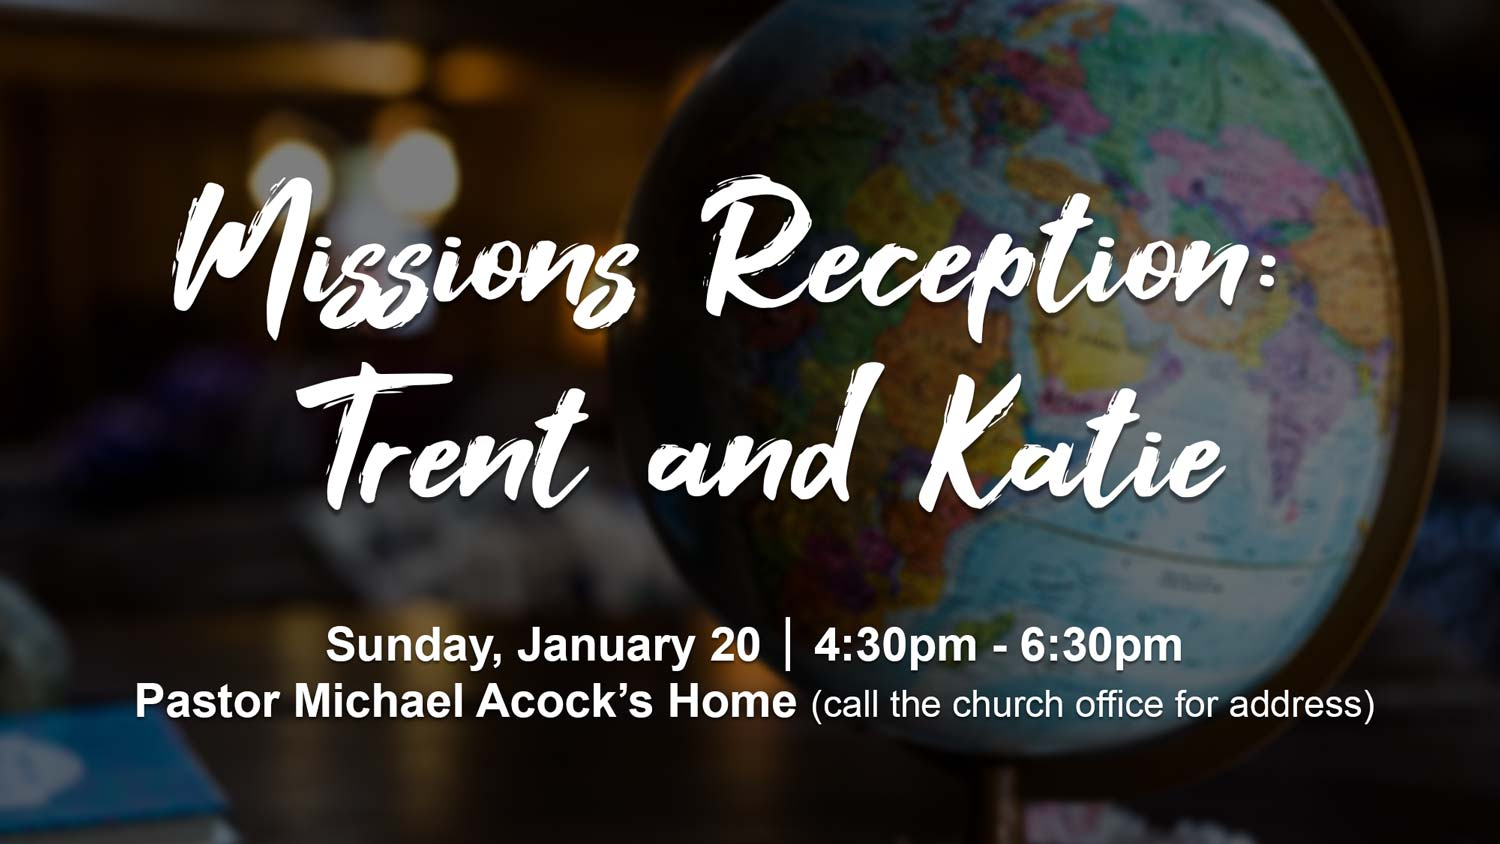 Missions Reception for Trent and Katie